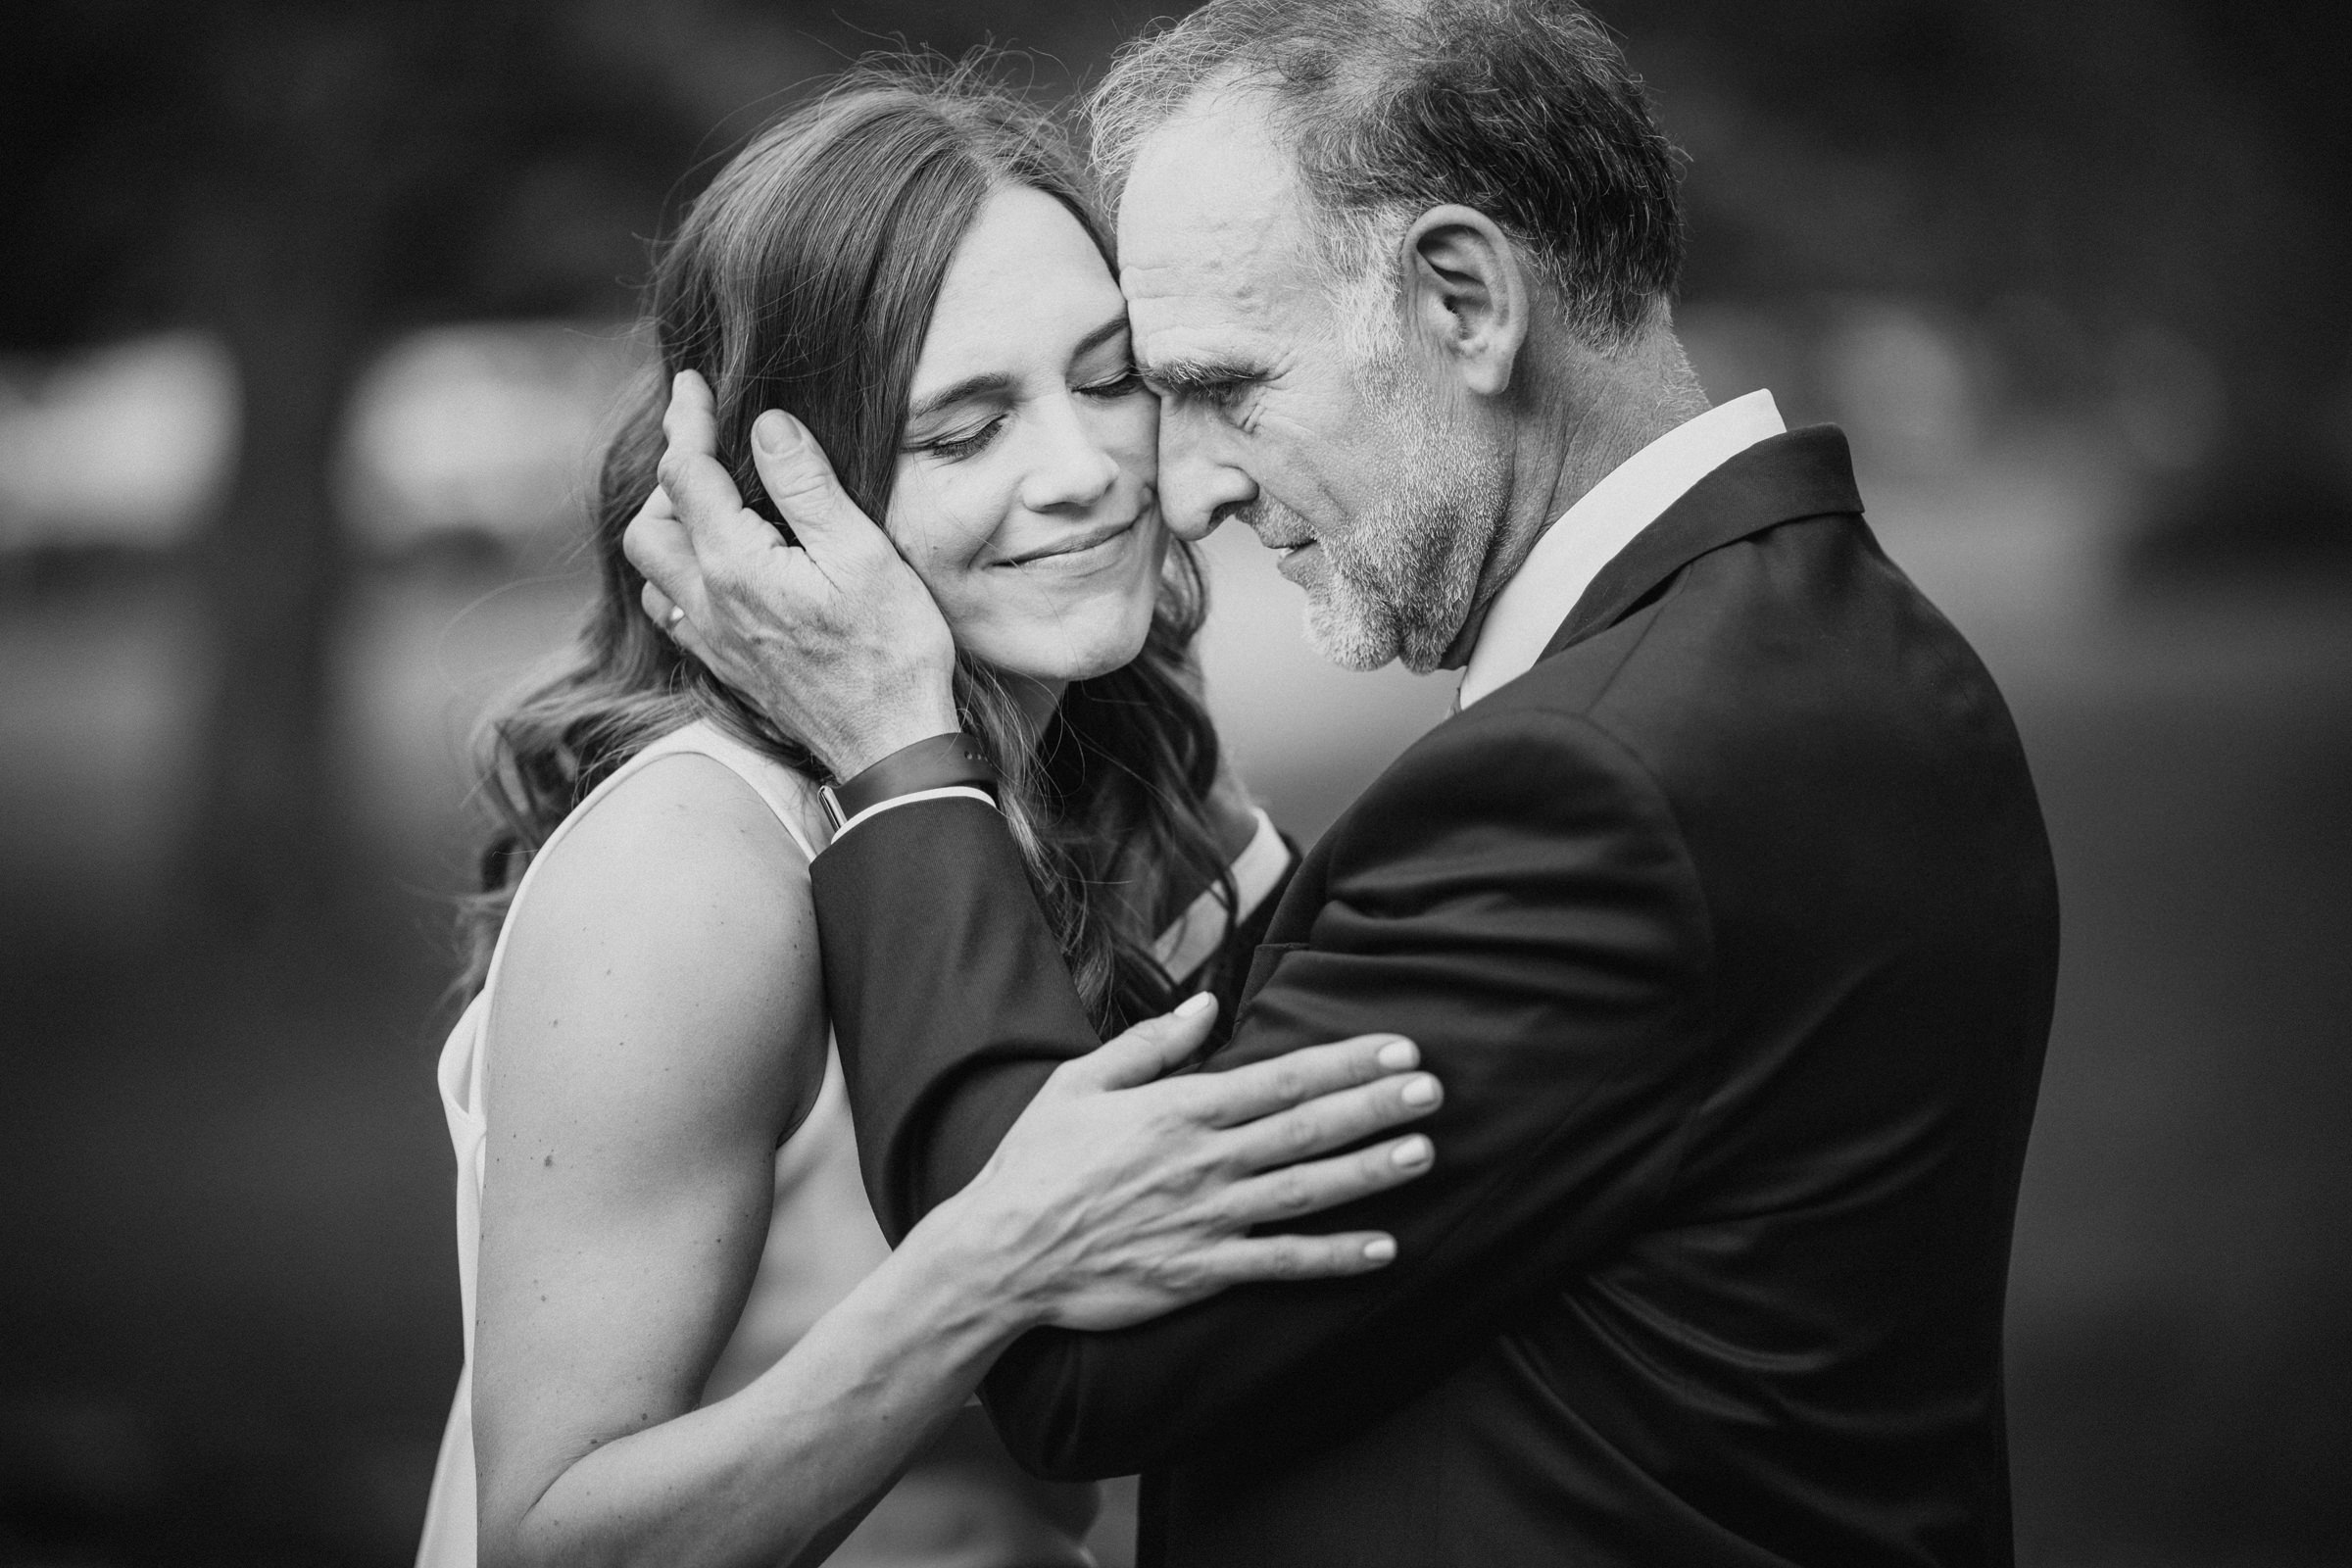 Dad embraces bride - Photo by Susan Stripling Photography